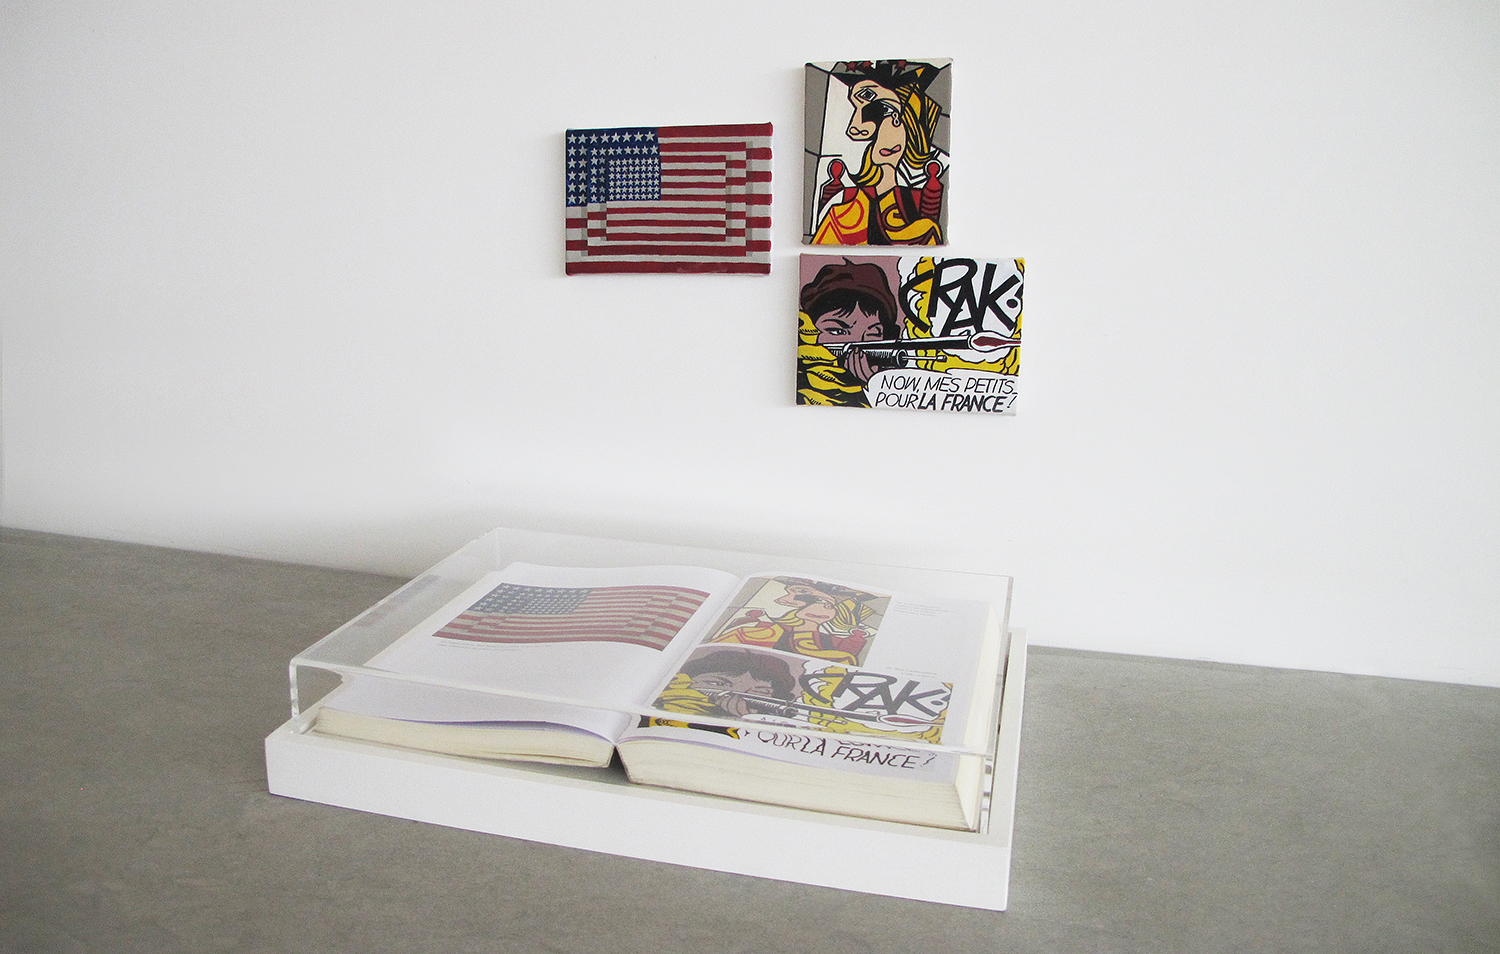 UnnumberedPages(That's How I Was Taught series)•2013 •Framed book, oil on canvas •10.4 x 14.2 (book), 3.75 x 5.5 in, 4.1 x 5.5 in,4.5 x 3.75 in